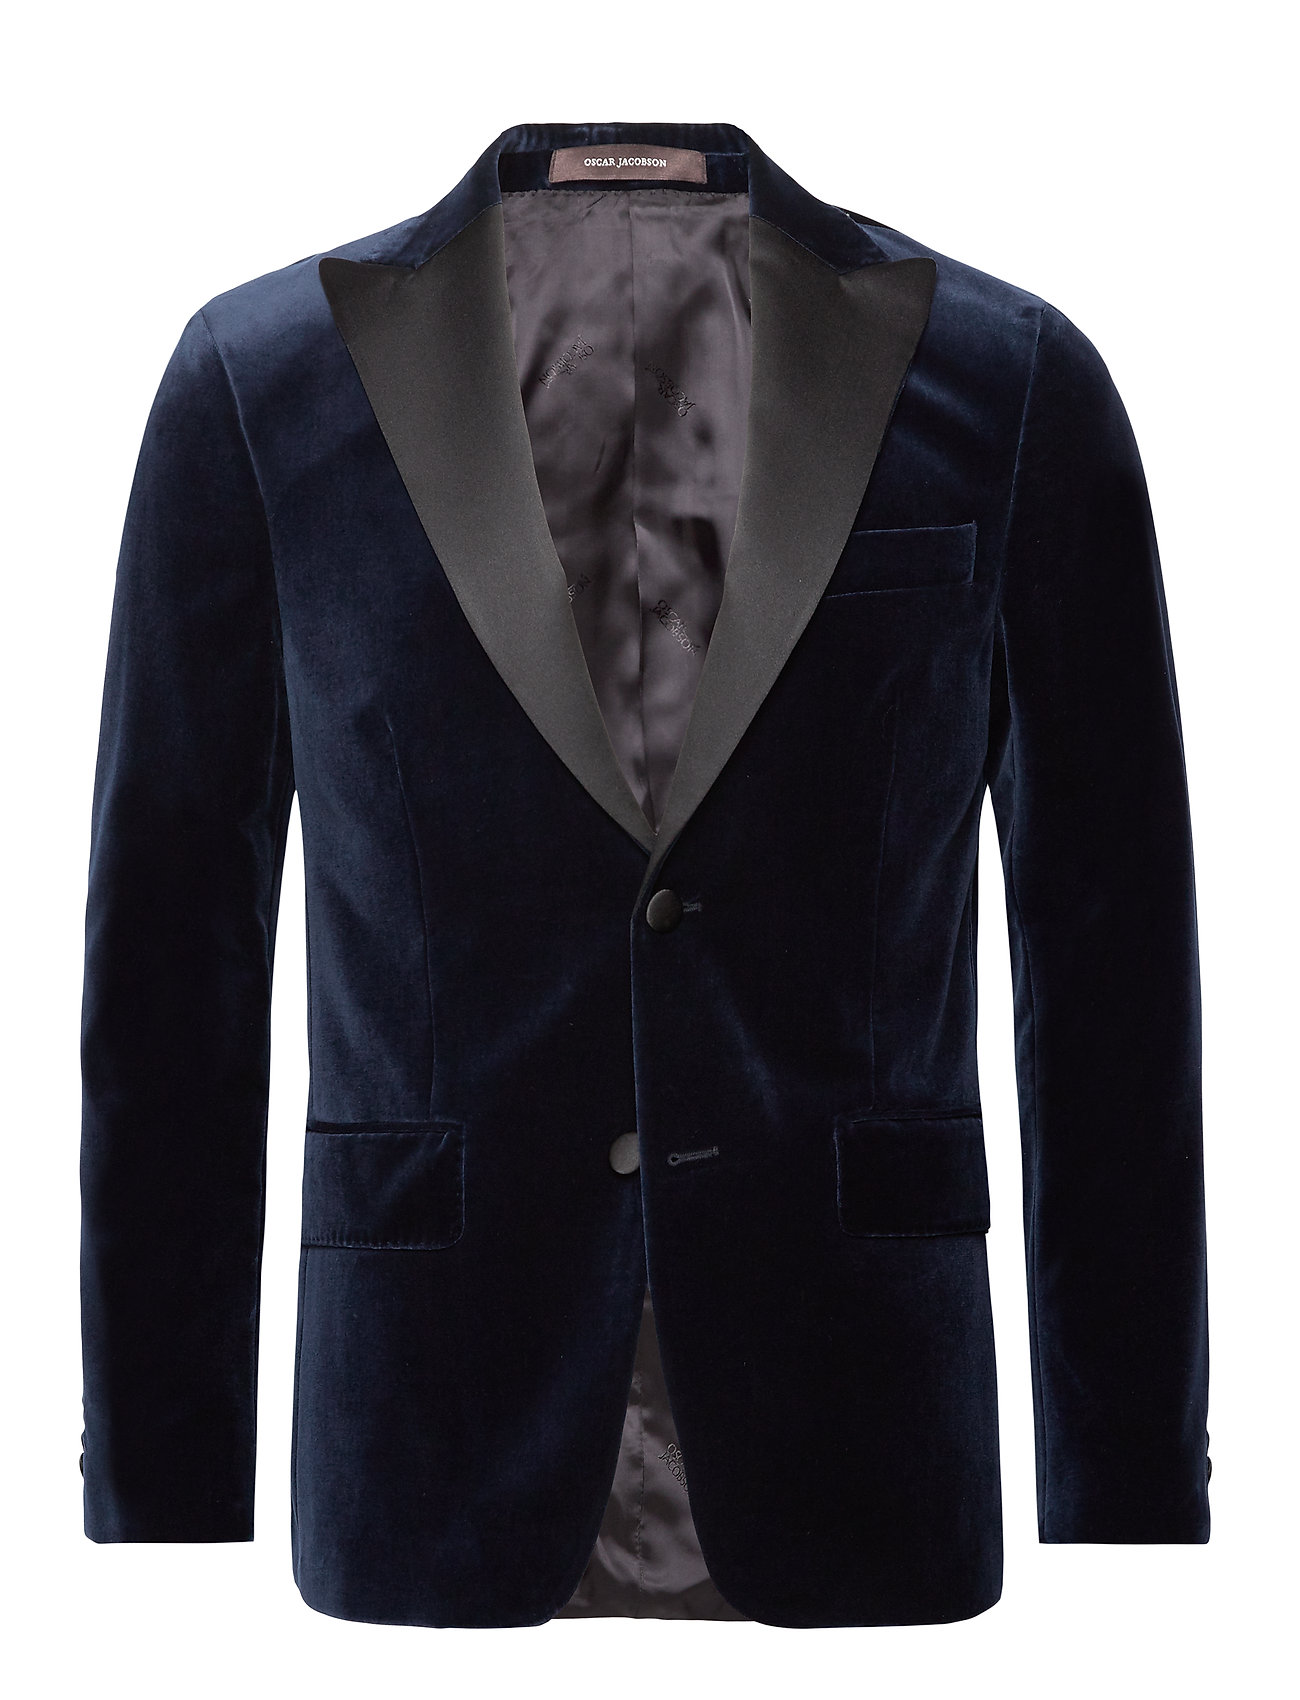 Oscar Jacobson Elder Blazer - 213 - LIGHT NAVY